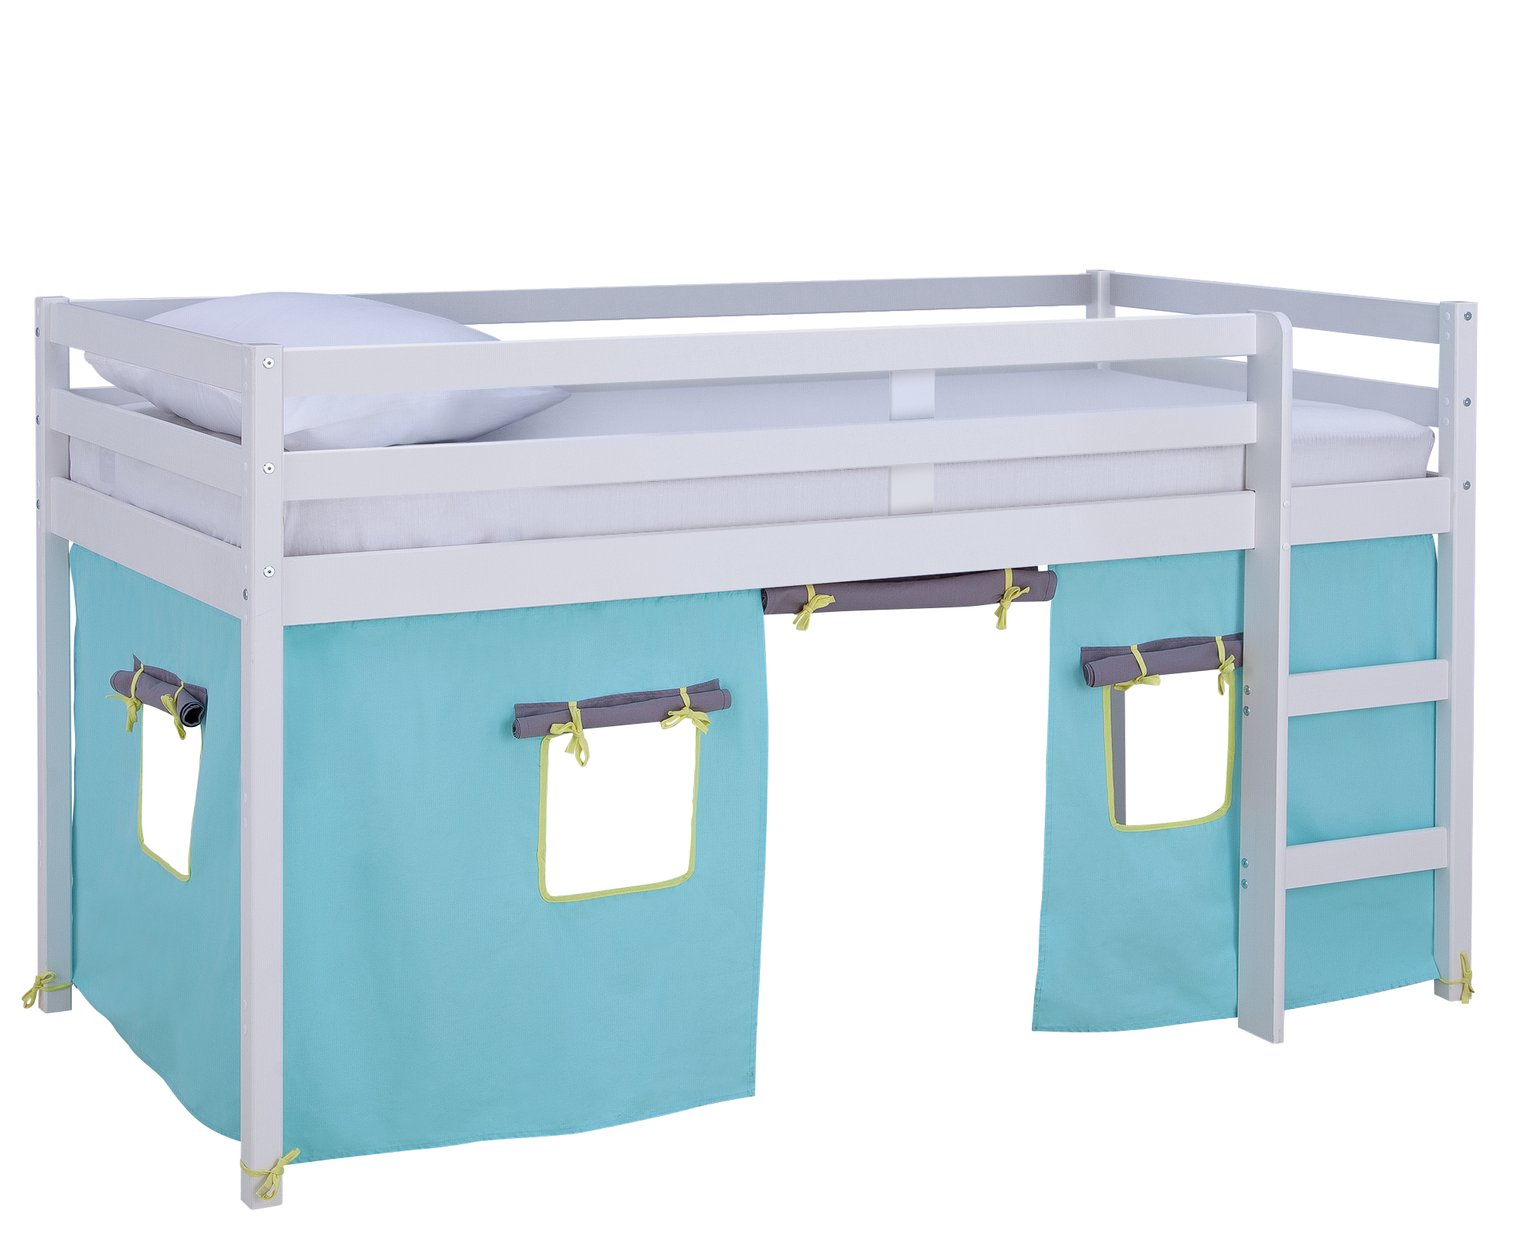 Argos Home Kaycie White Mid Sleeper with Turqoise Tent